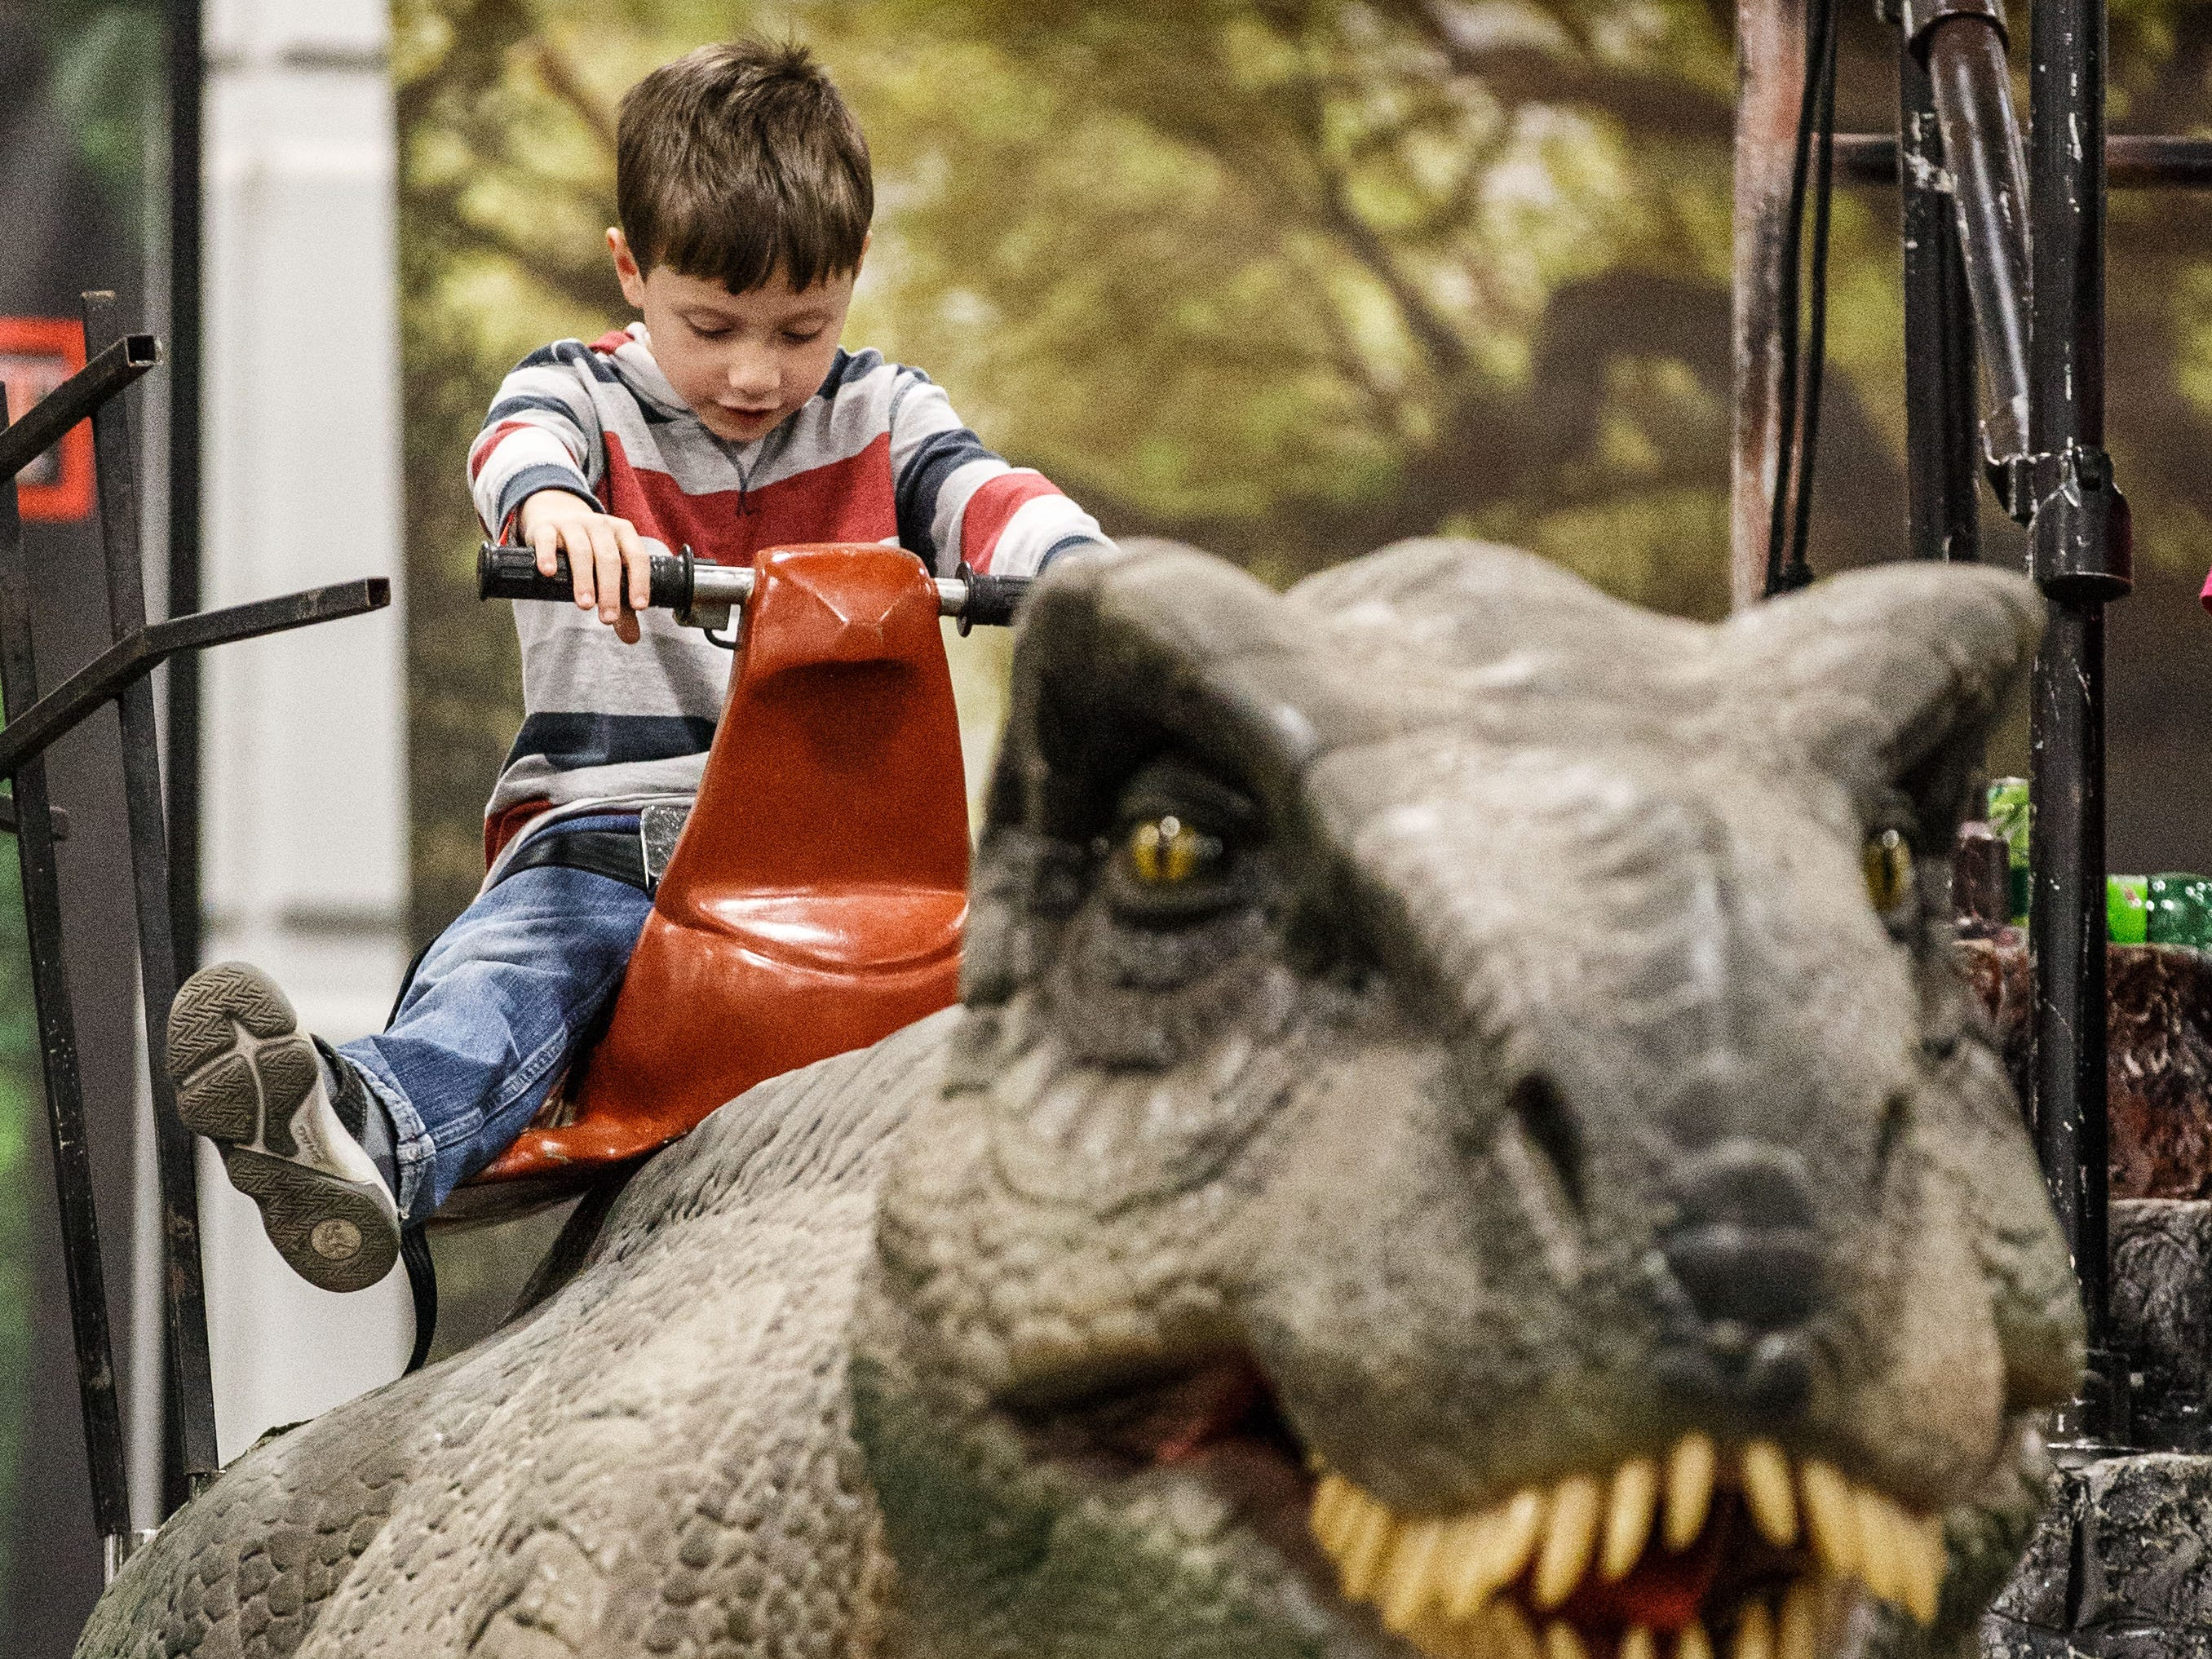 Liam Broz, 6, of Woodstock, IL. rides a life-sized dinosaur during his visit to the Jurassic Quest exhibit at Wisconsin State Fair Park in West Allis on Sunday, Oct. 21, 2018. The three-day event featured more than 80 life-sized animatronic dinosaurs, fossils, games, crafts, bounce houses and more.